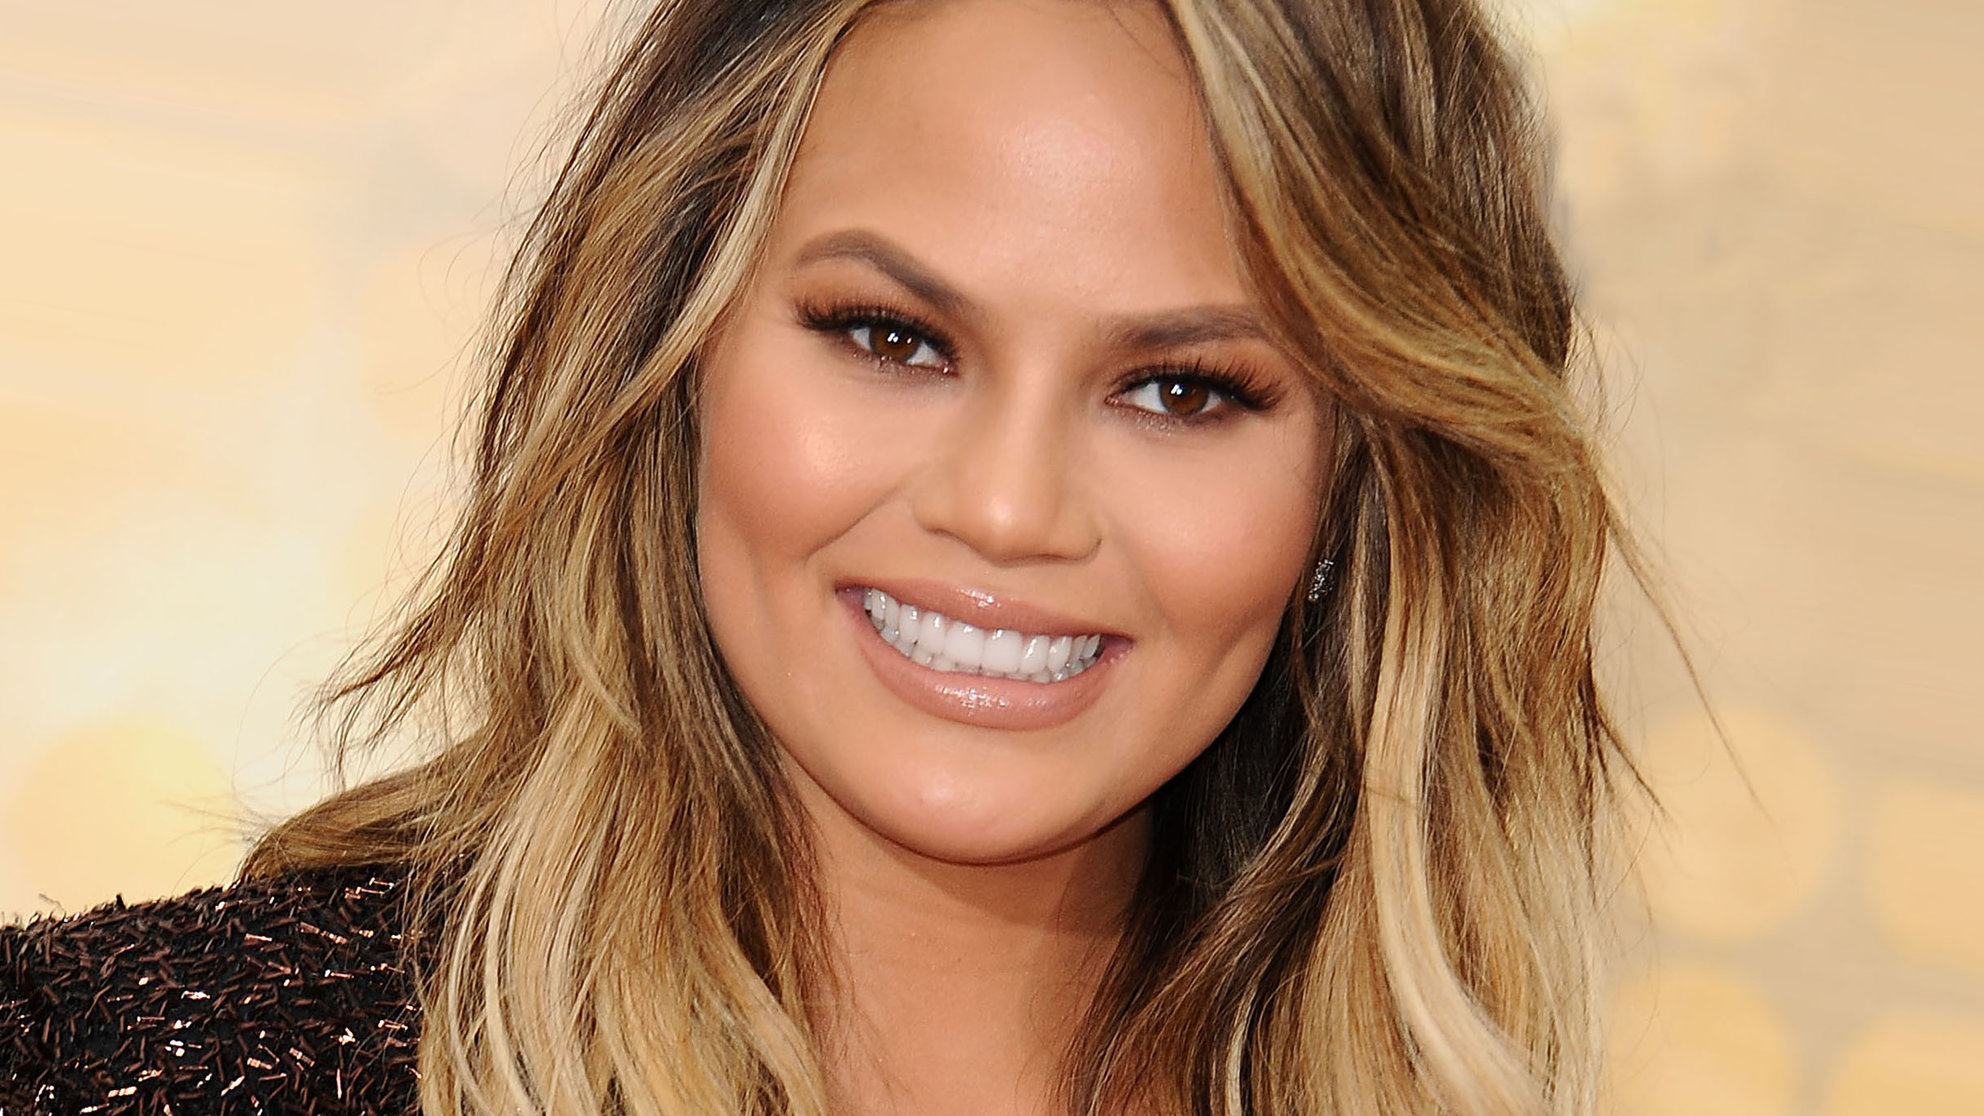 Chrissy Teigen Shares A Photo Of Her Stretch Marks On